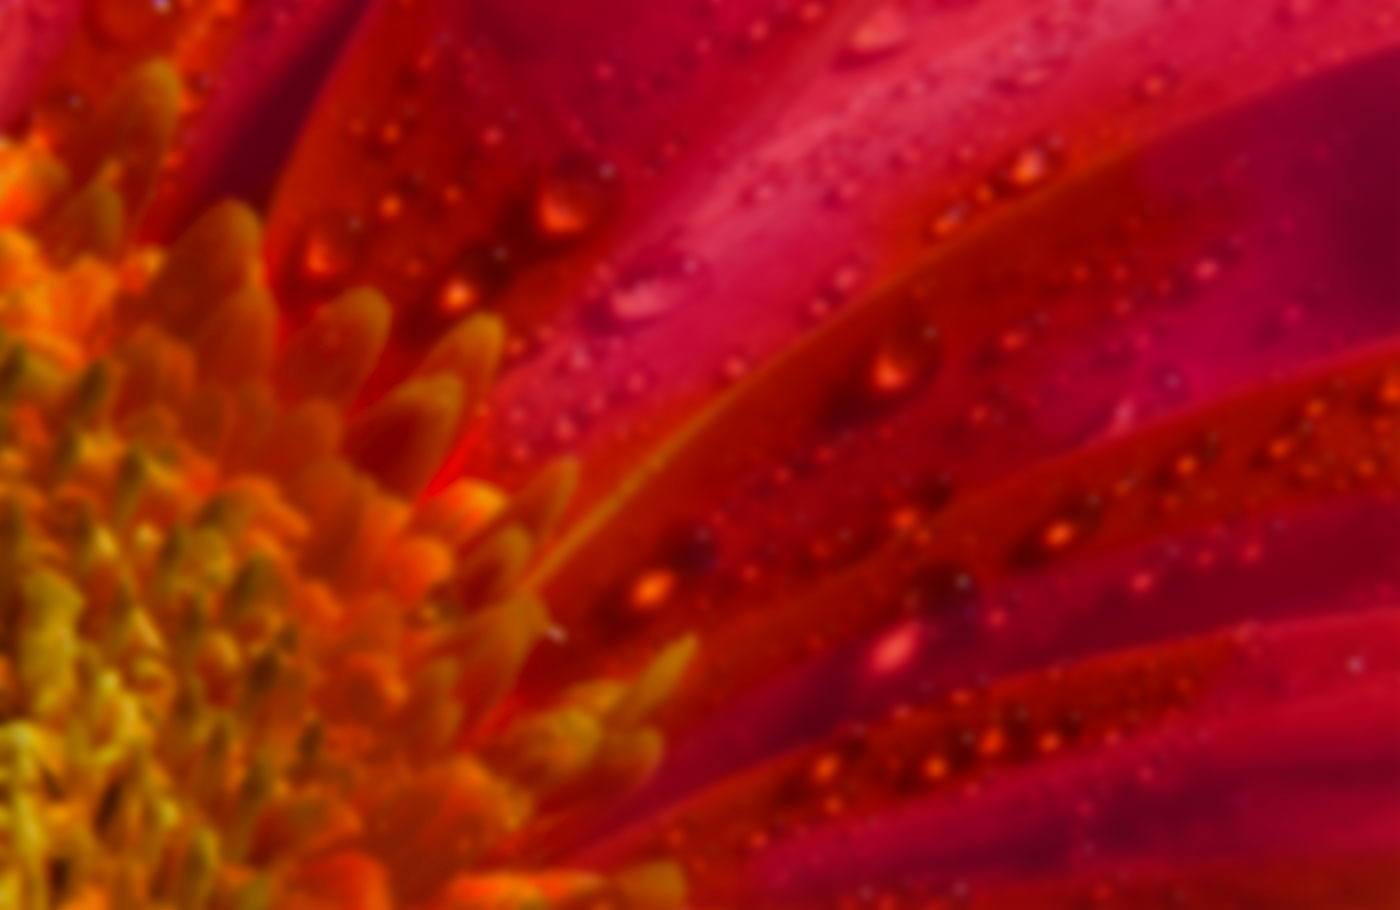 Macro photo of a red and orange flower.